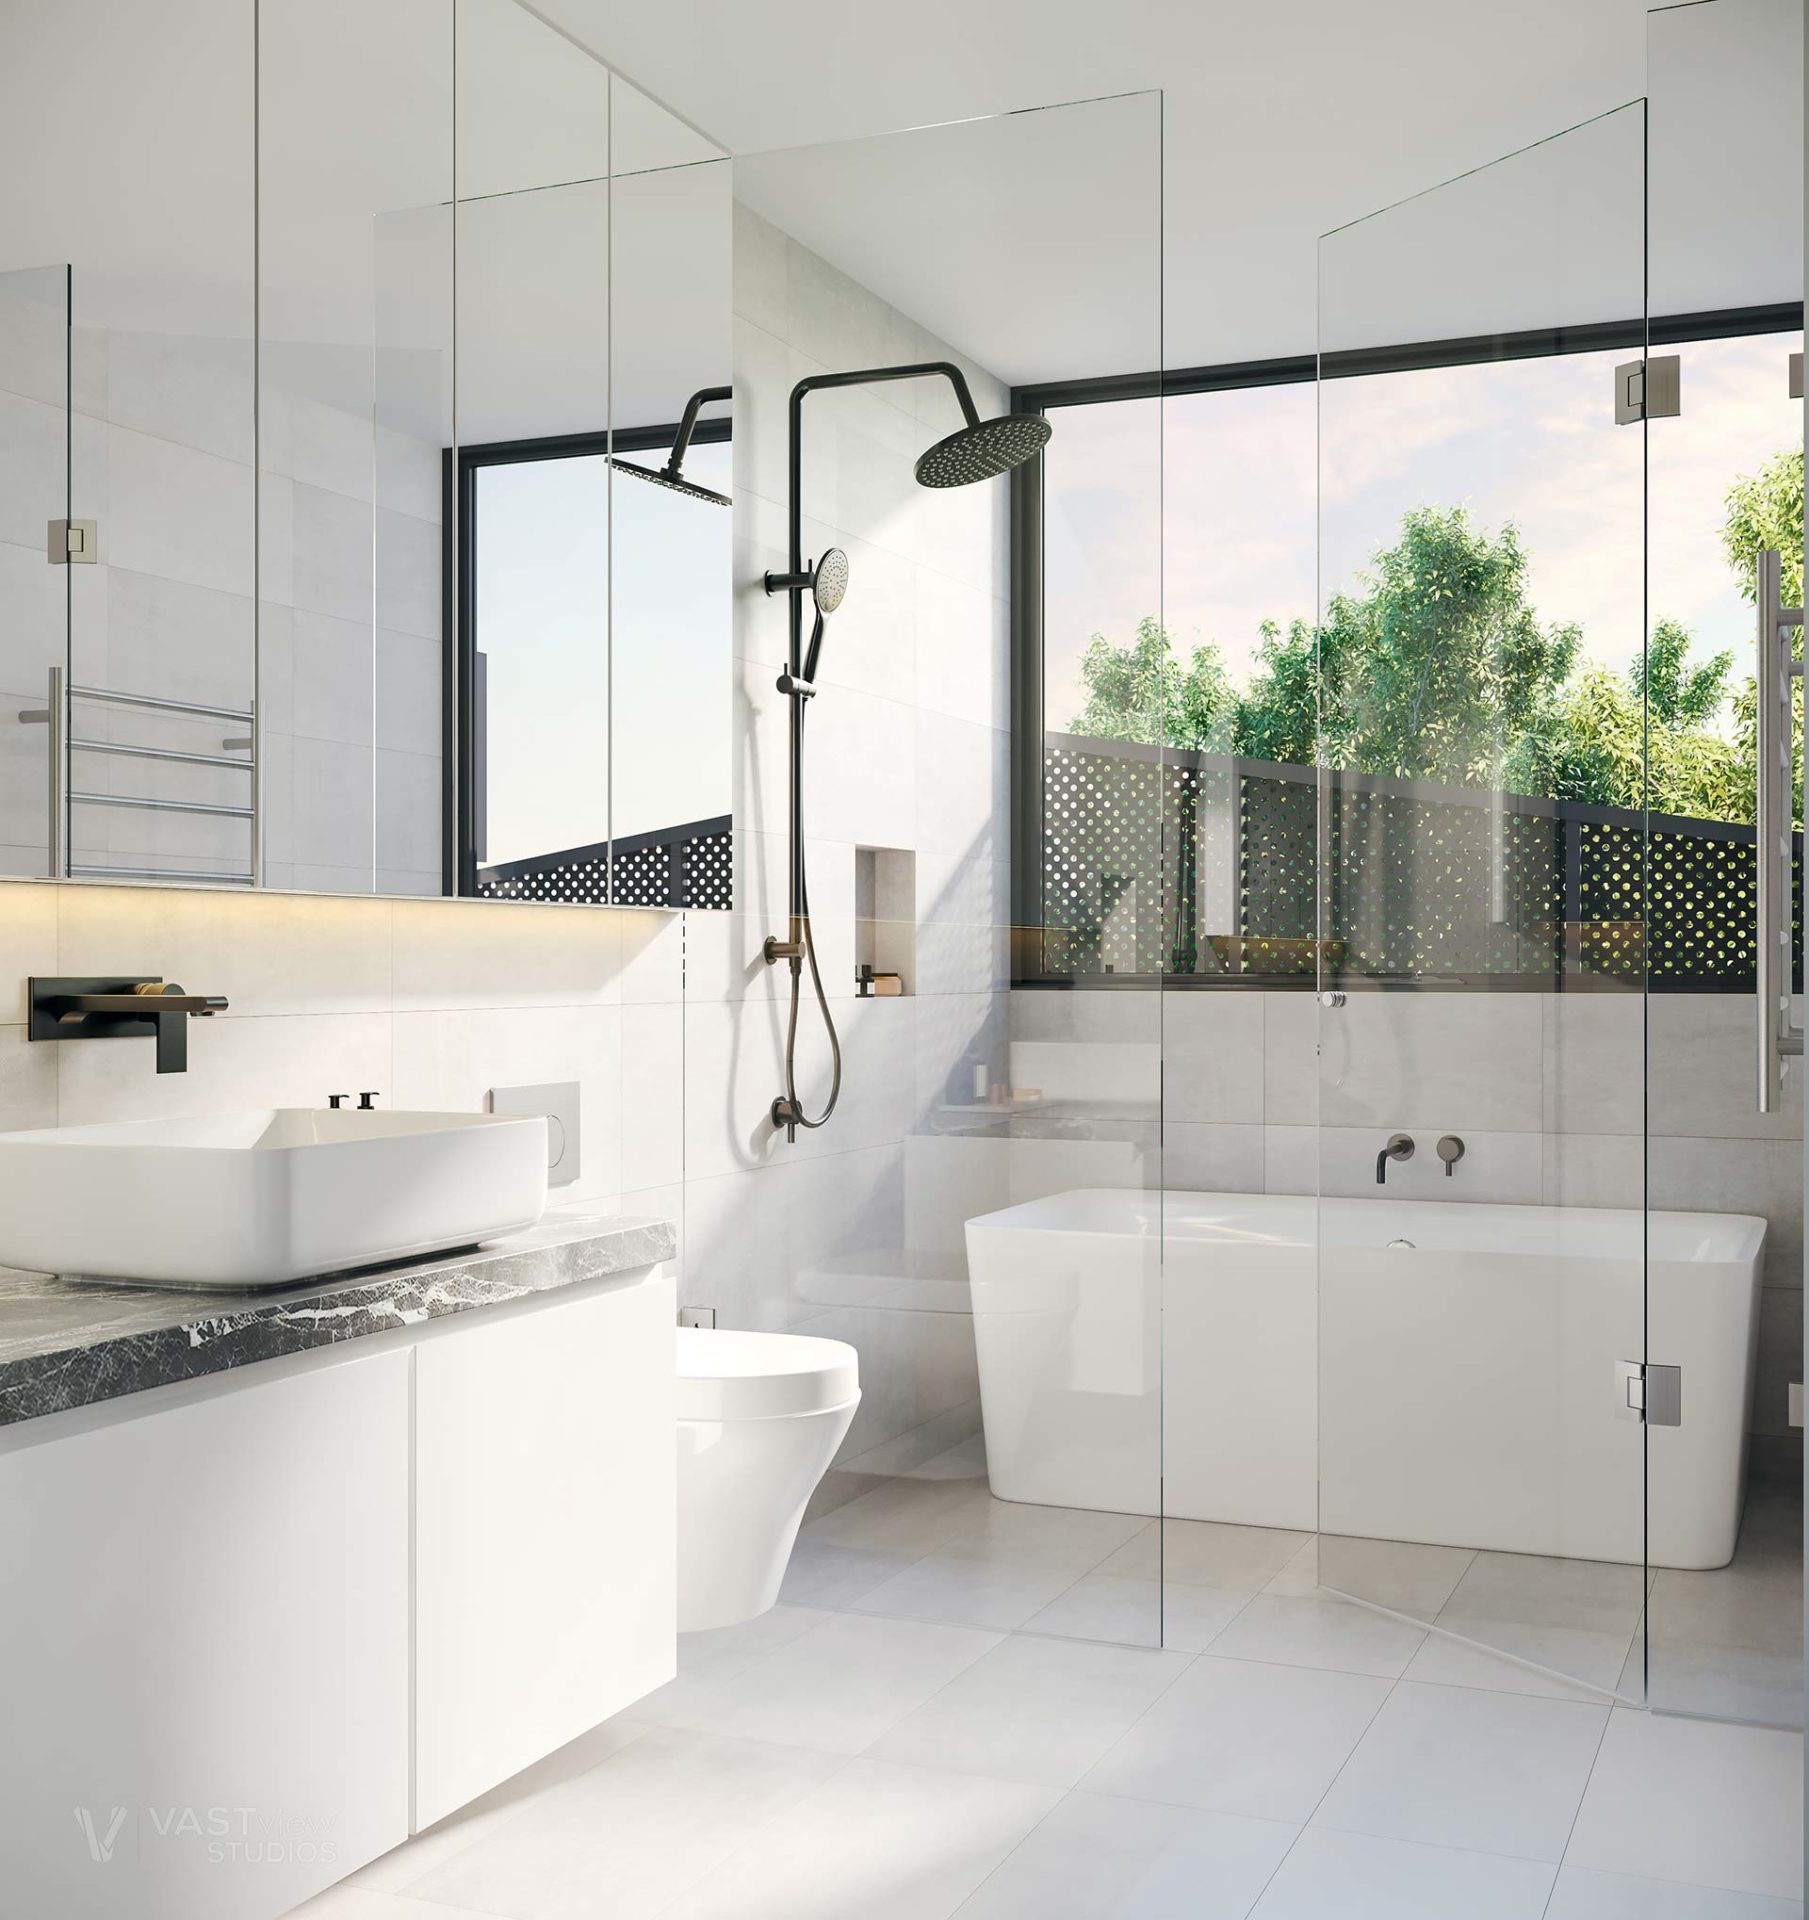 IramooSt_TH6Bathroom_FinalRender_v1.0